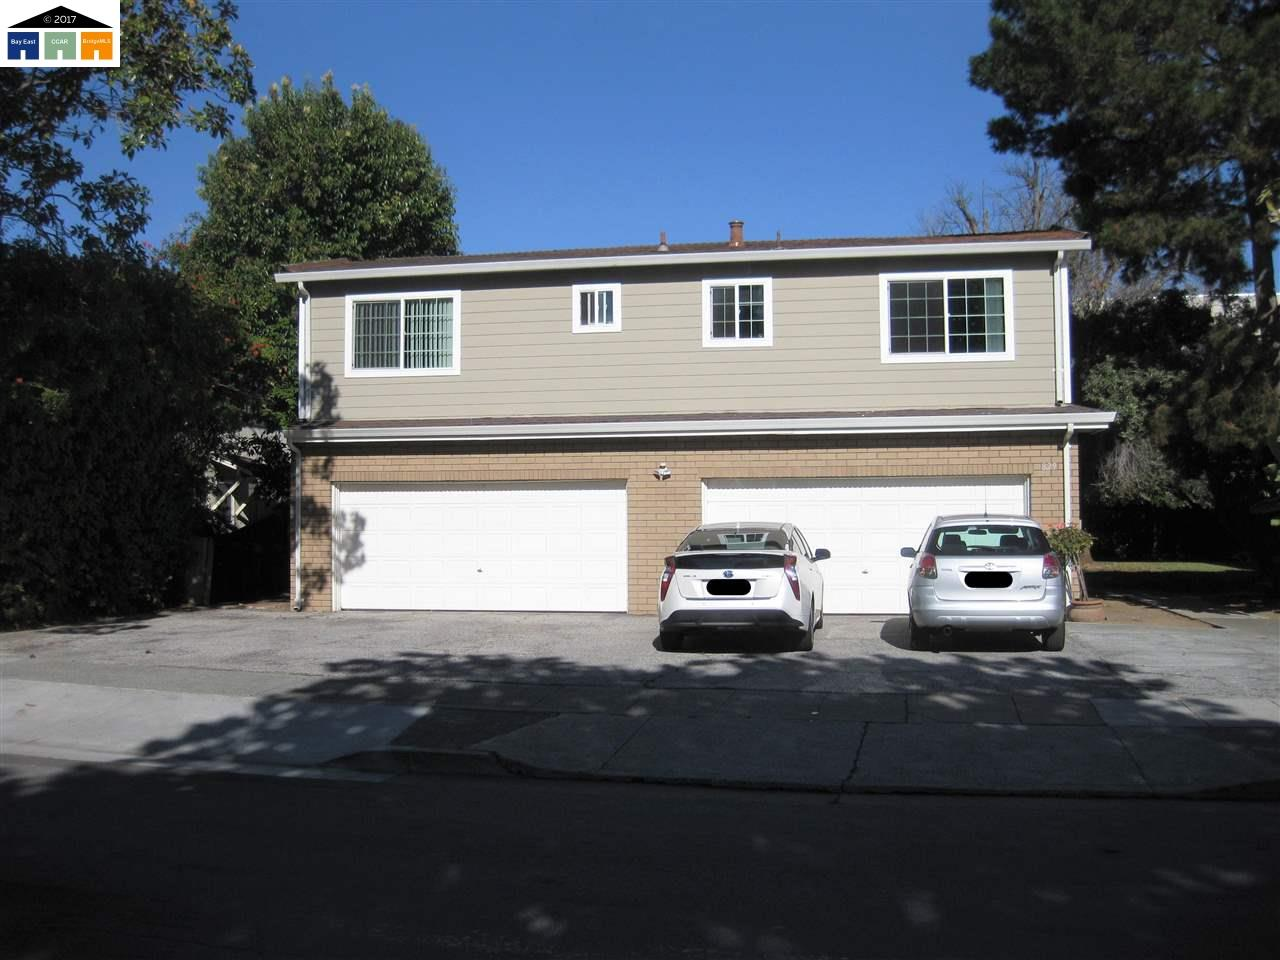 Multi-Family Home for Sale at 829 Blair Avenue 829 Blair Avenue Sunnyvale, California 94087 United States